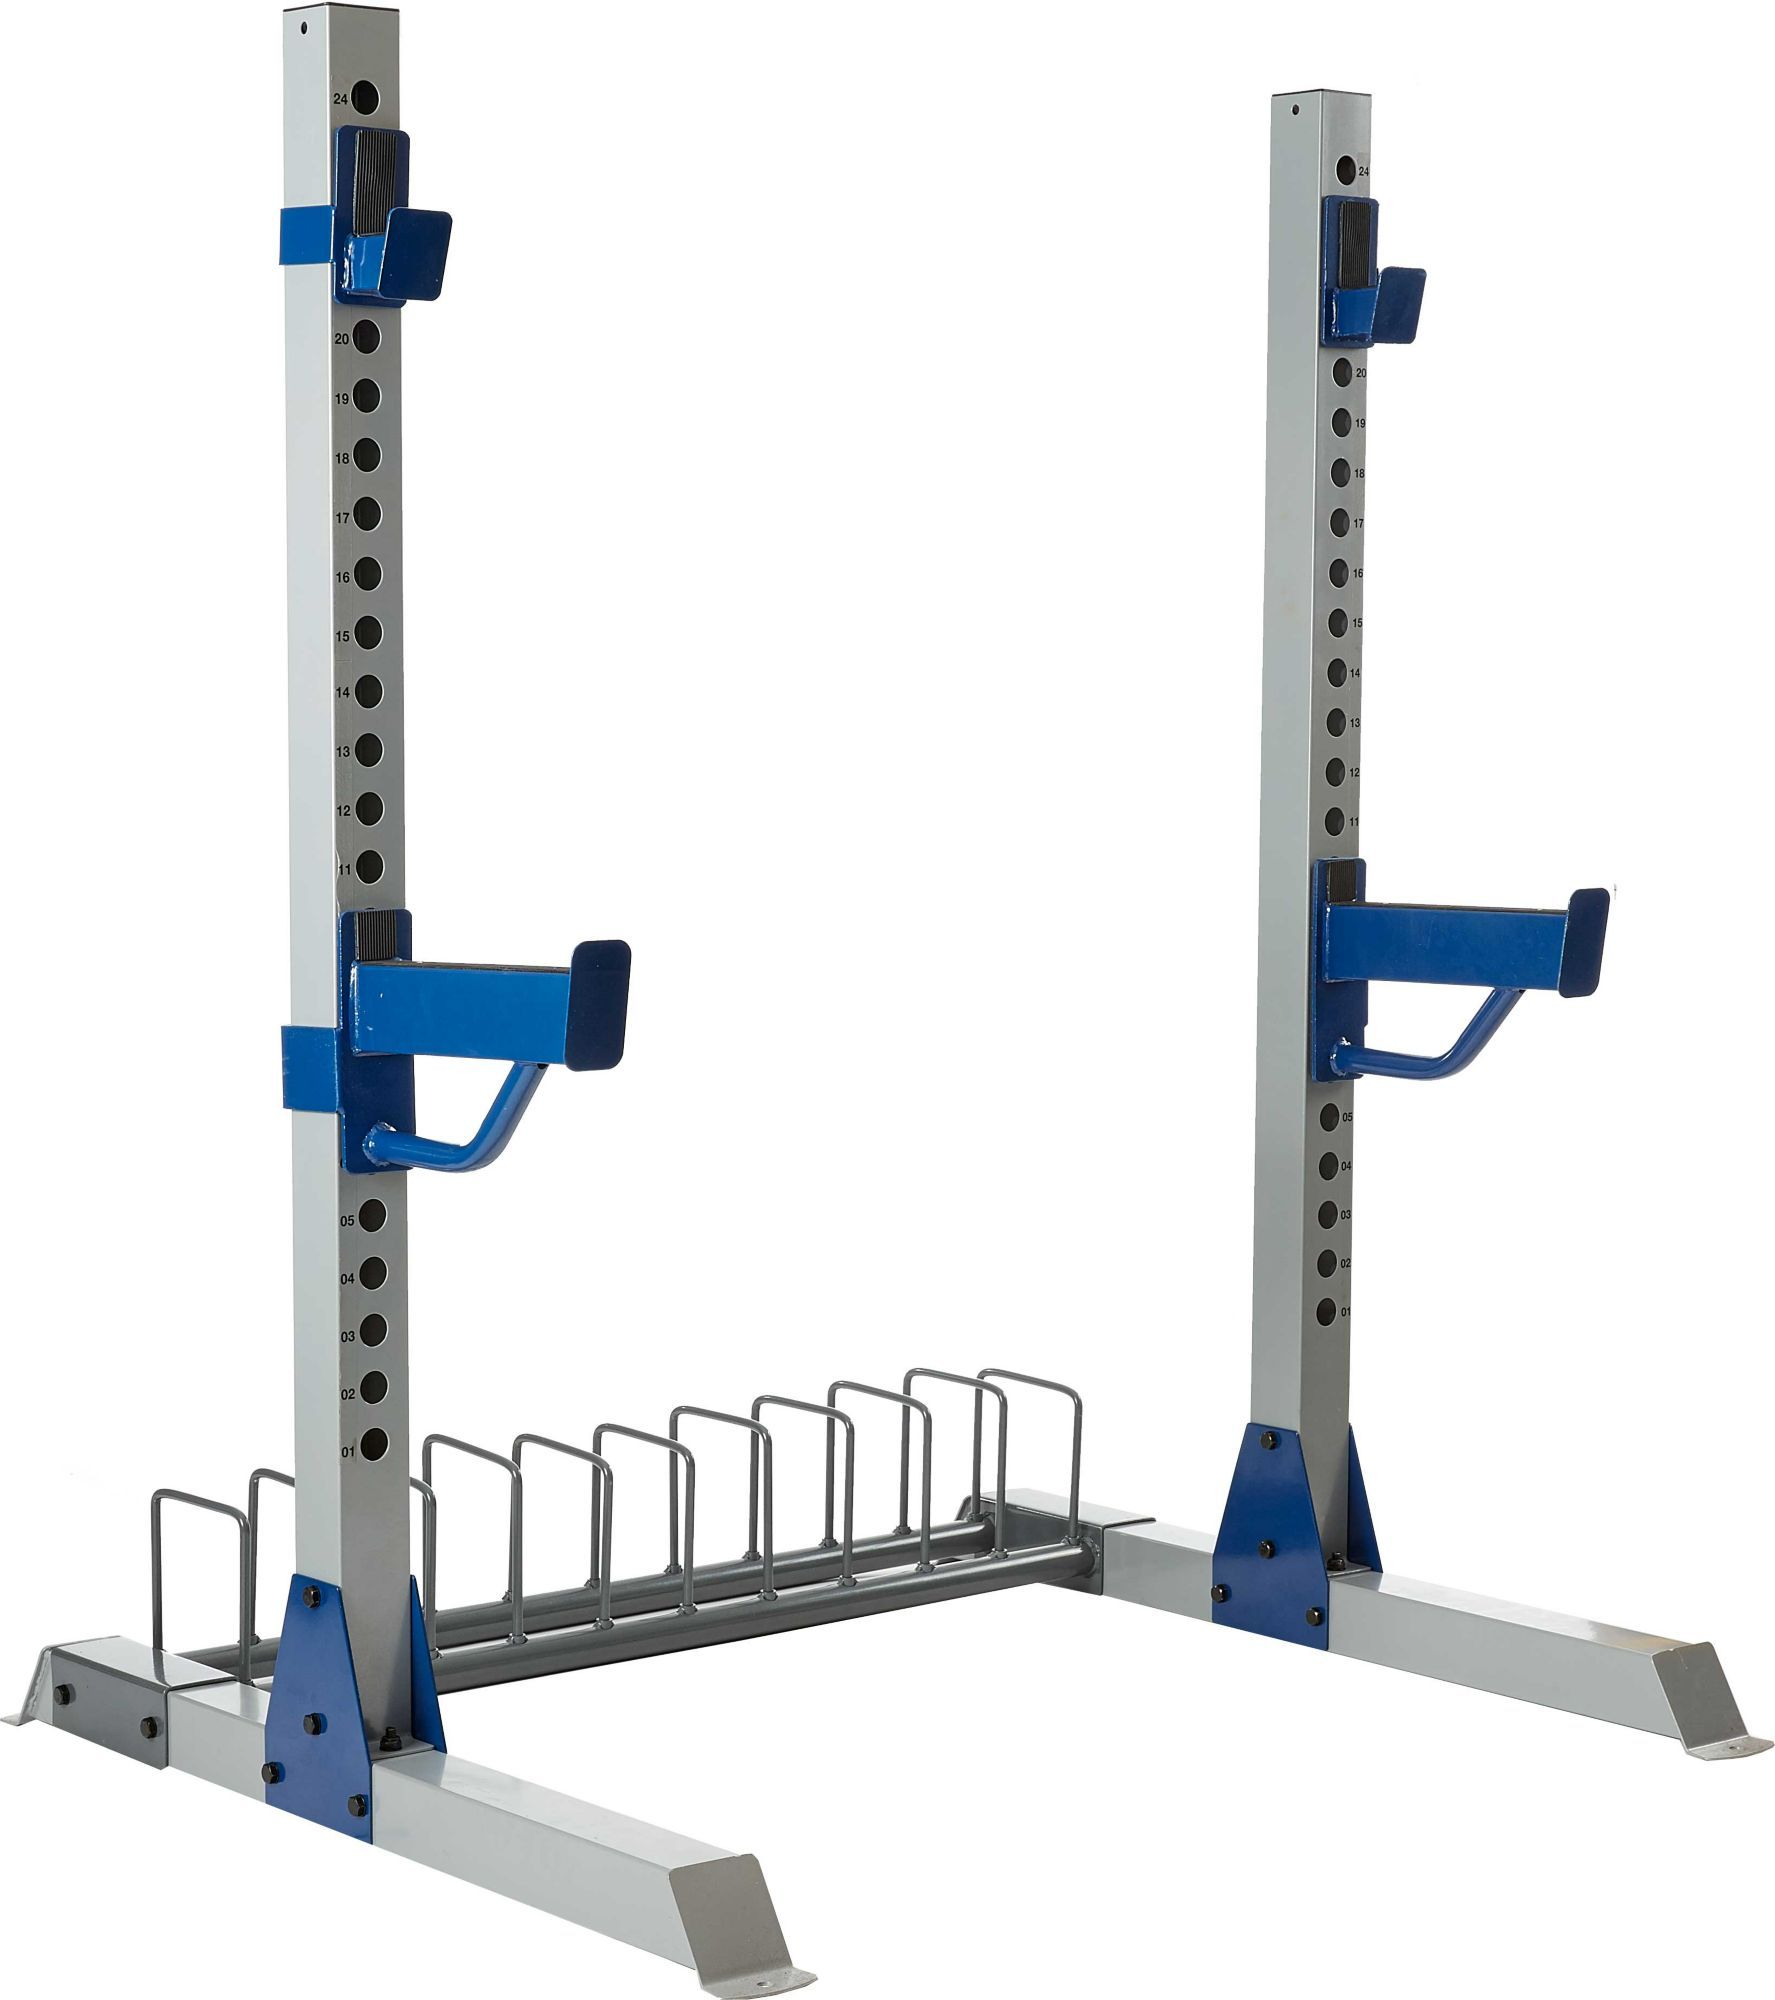 safety rack ontario buy northern sell weights save kijiji canada light in olympic bench bar with b squat s